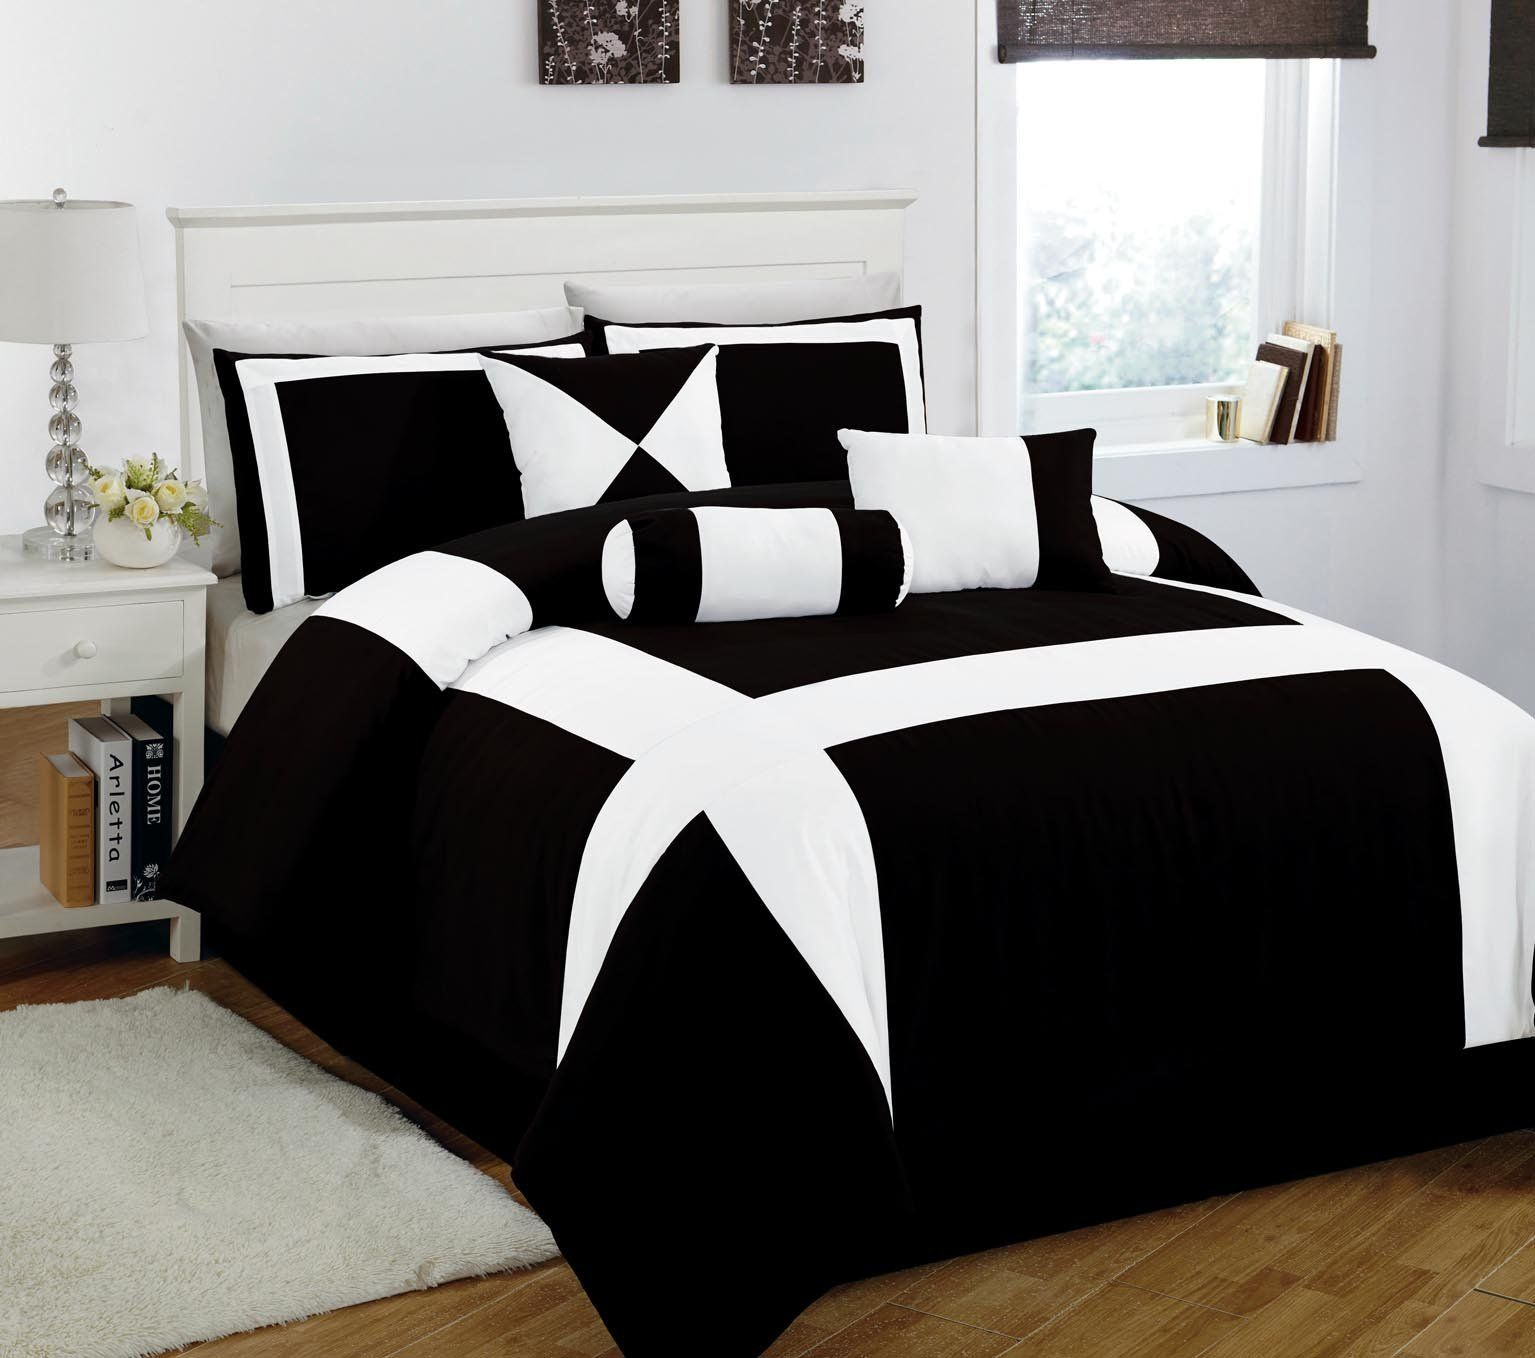 Best 11 Piece King Jefferson Black And White Bed In A Bag W 400 x 300